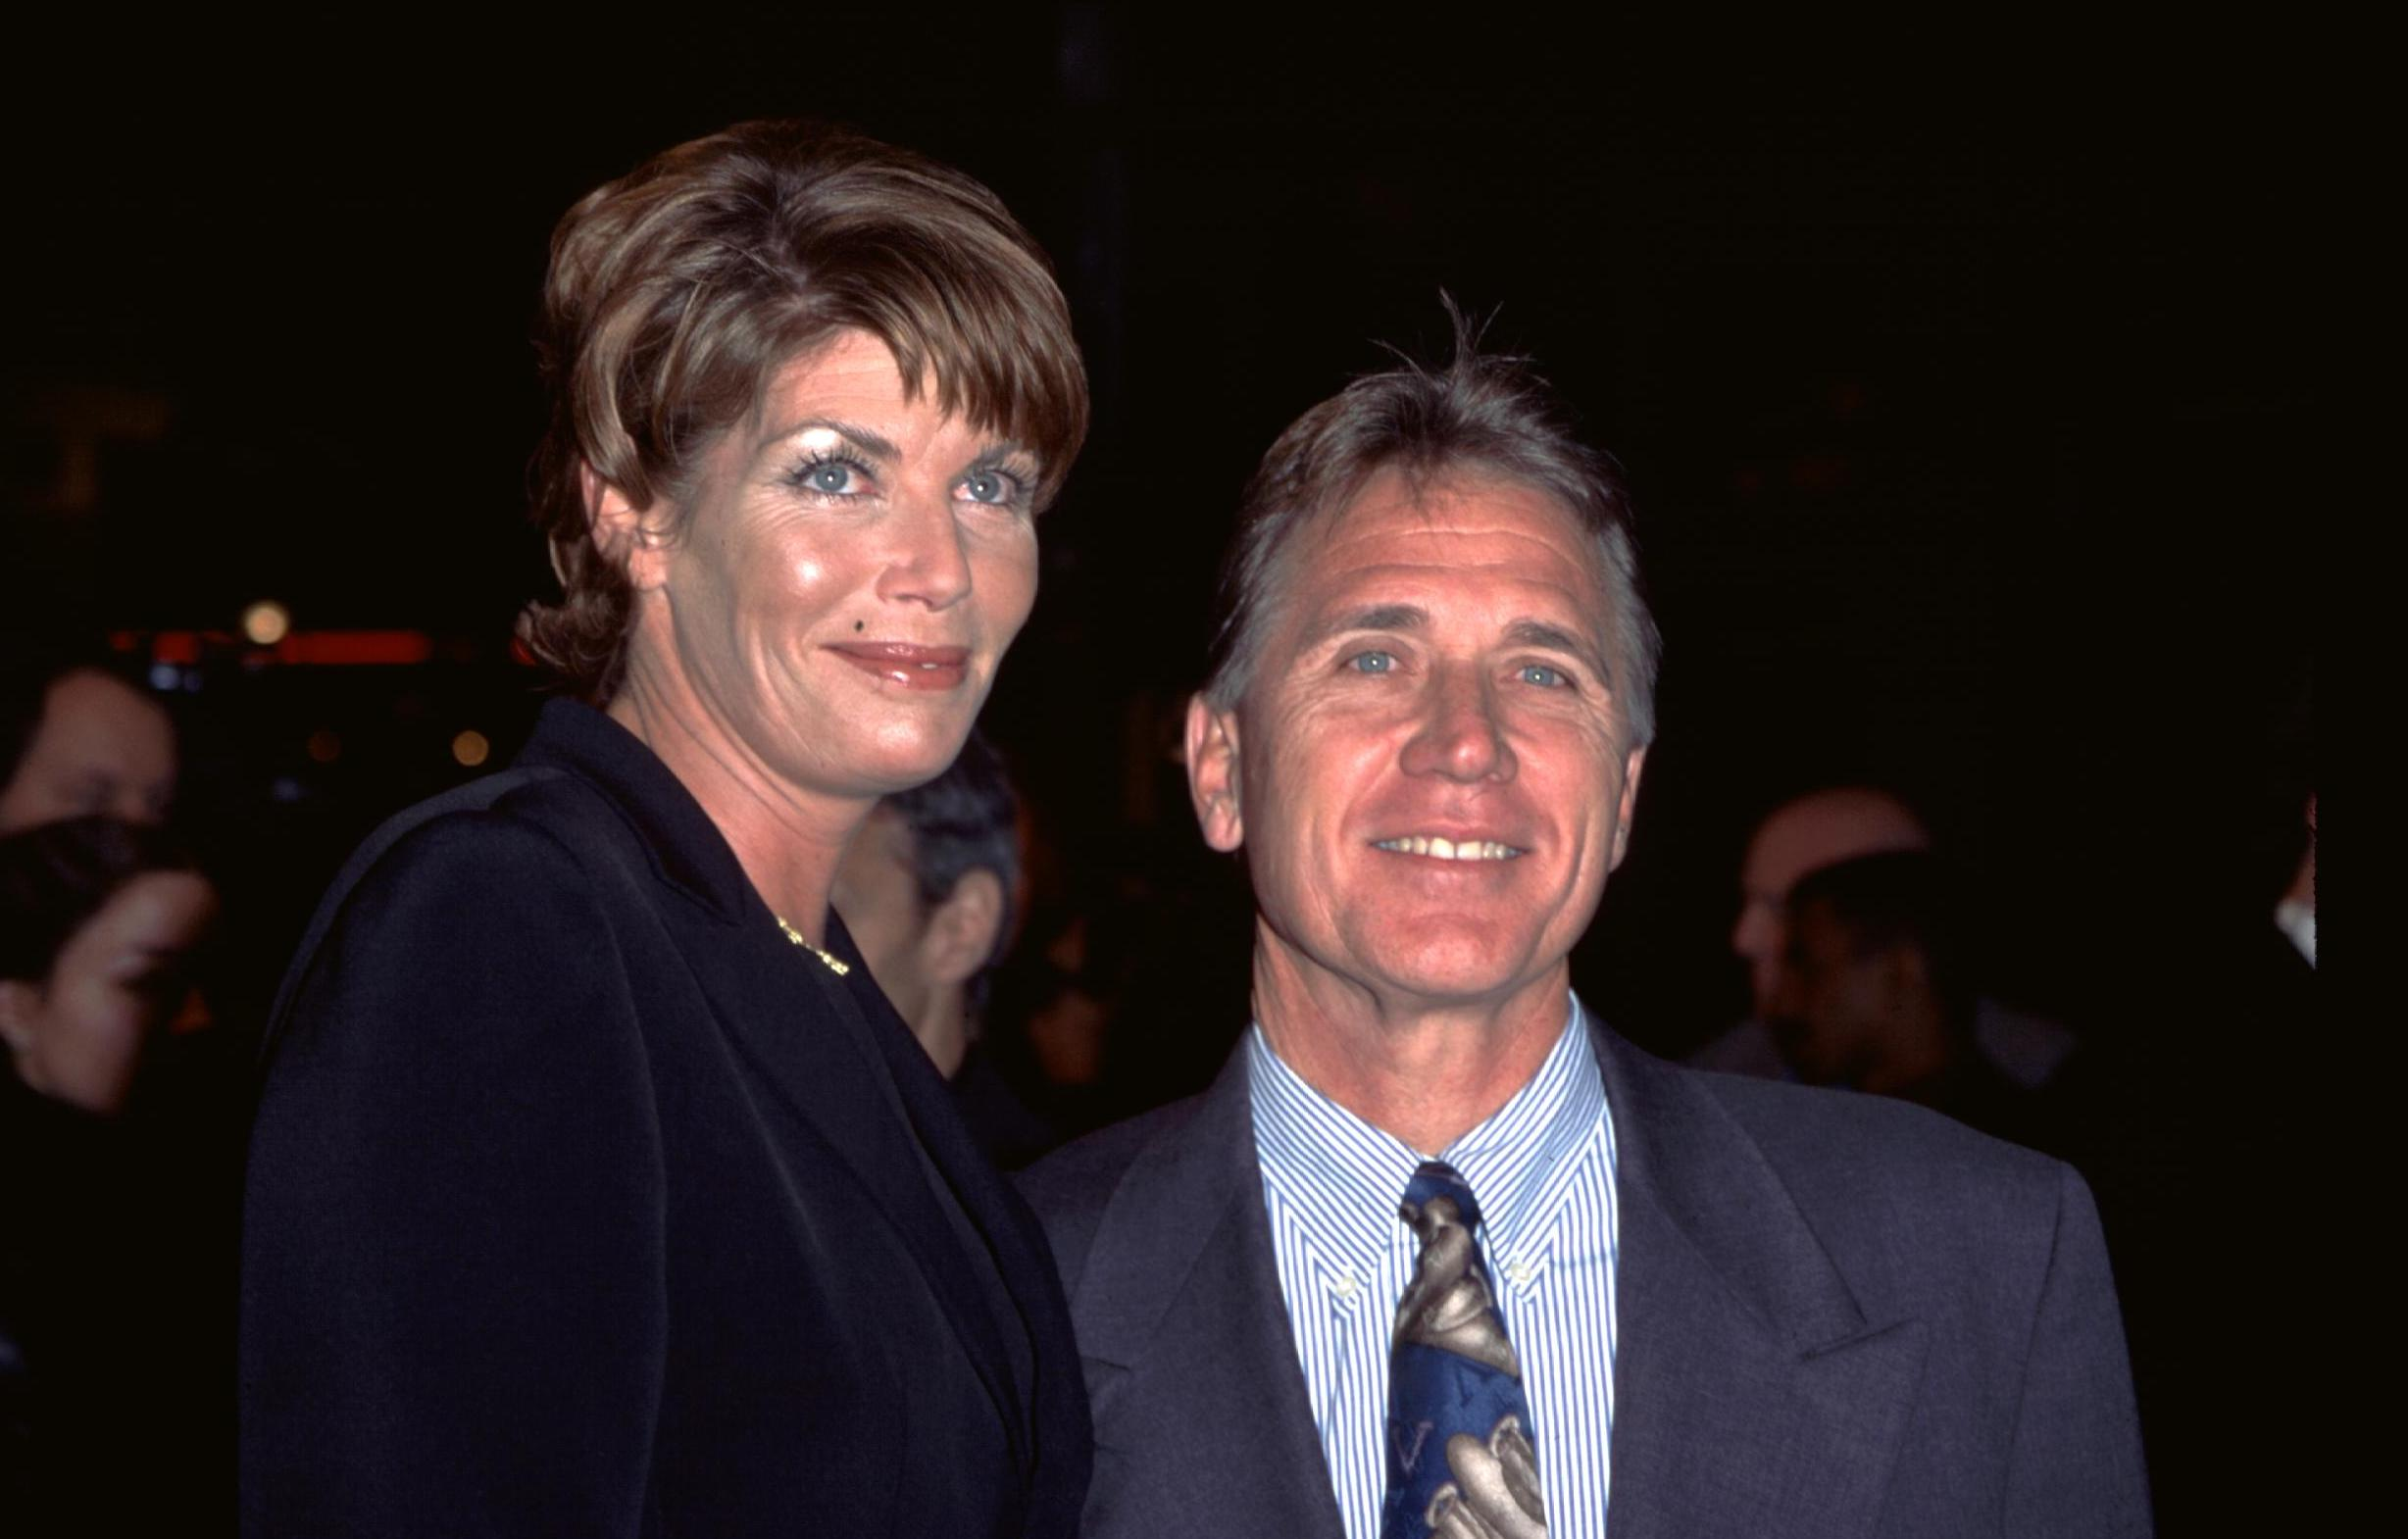 GettyImages 849397 Remember Kelly McGillis? Here's What She Looks Like Now!